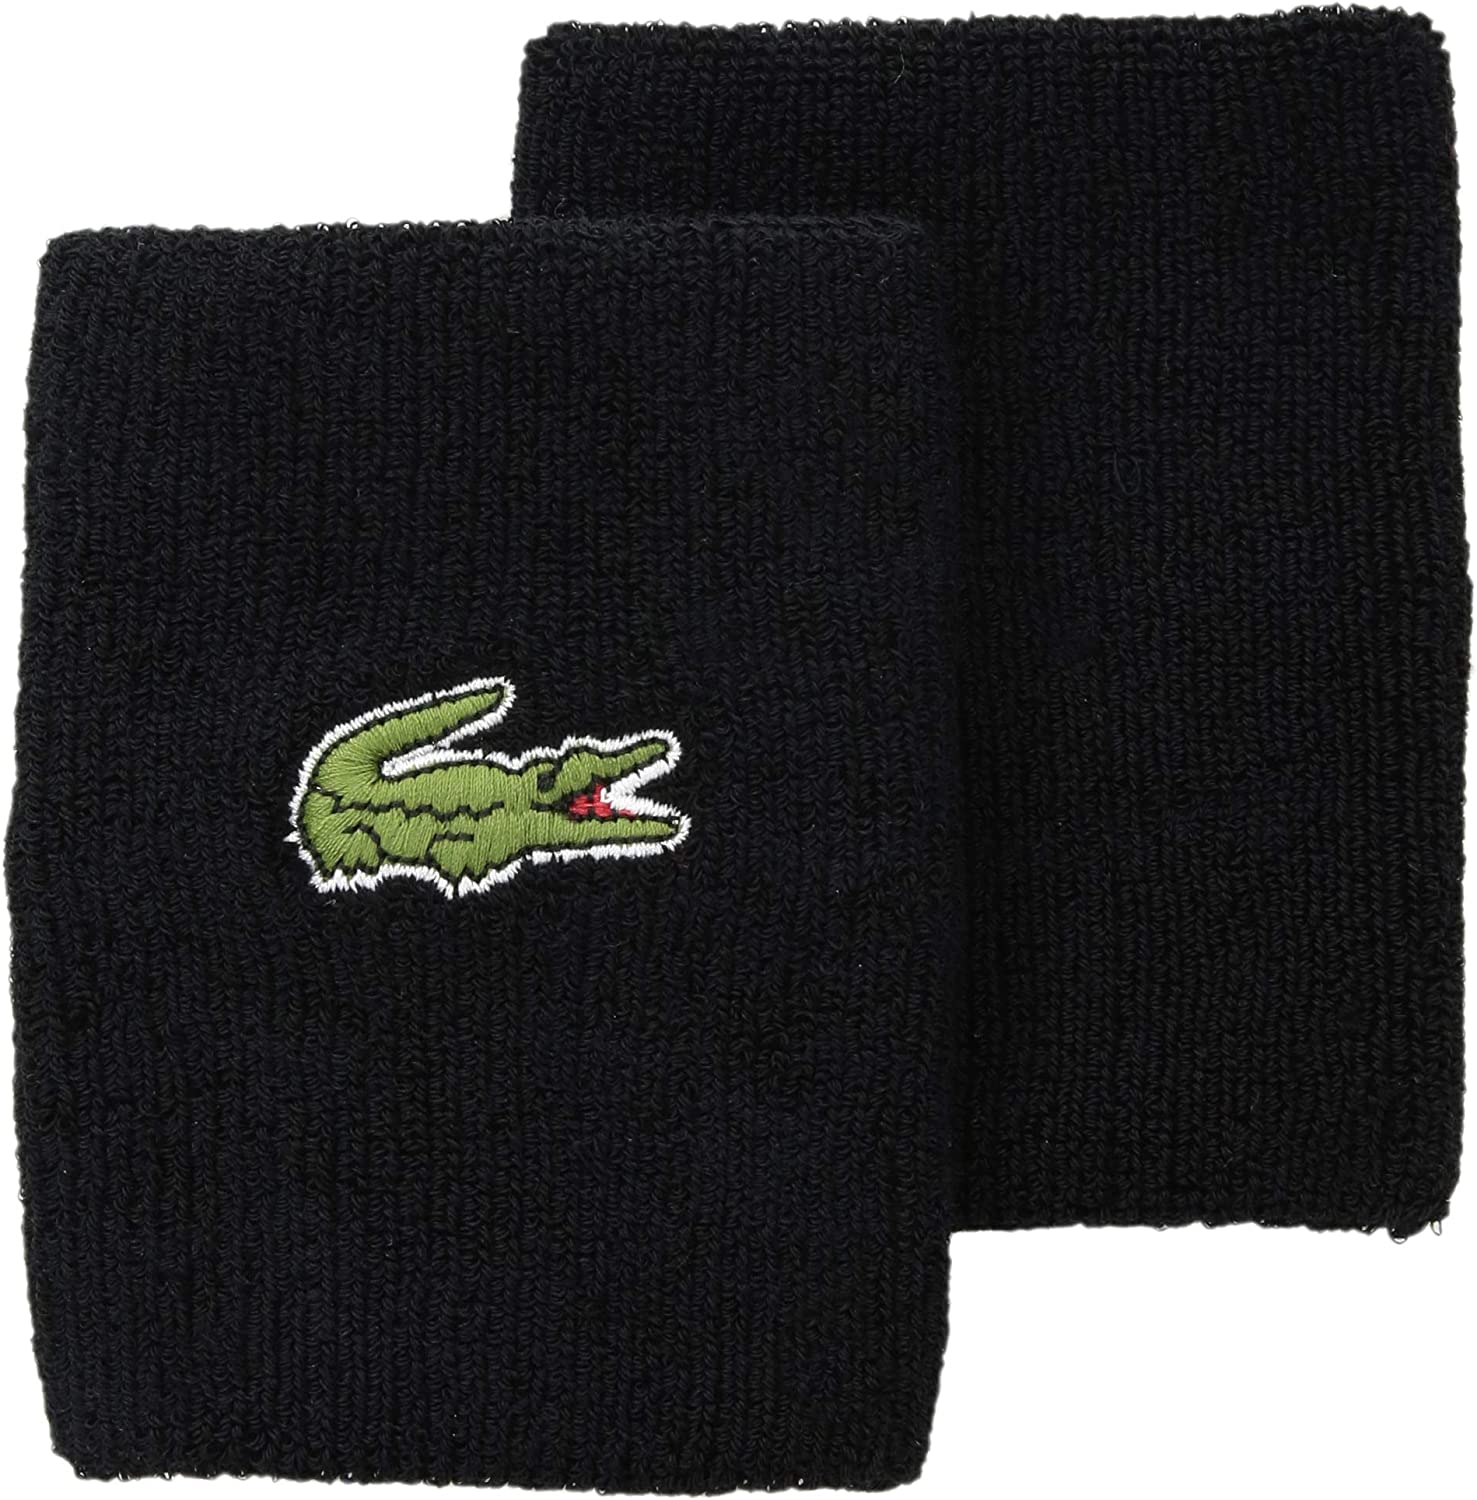 Lacoste Mens Sport Training Colorblock Wristband with Croc